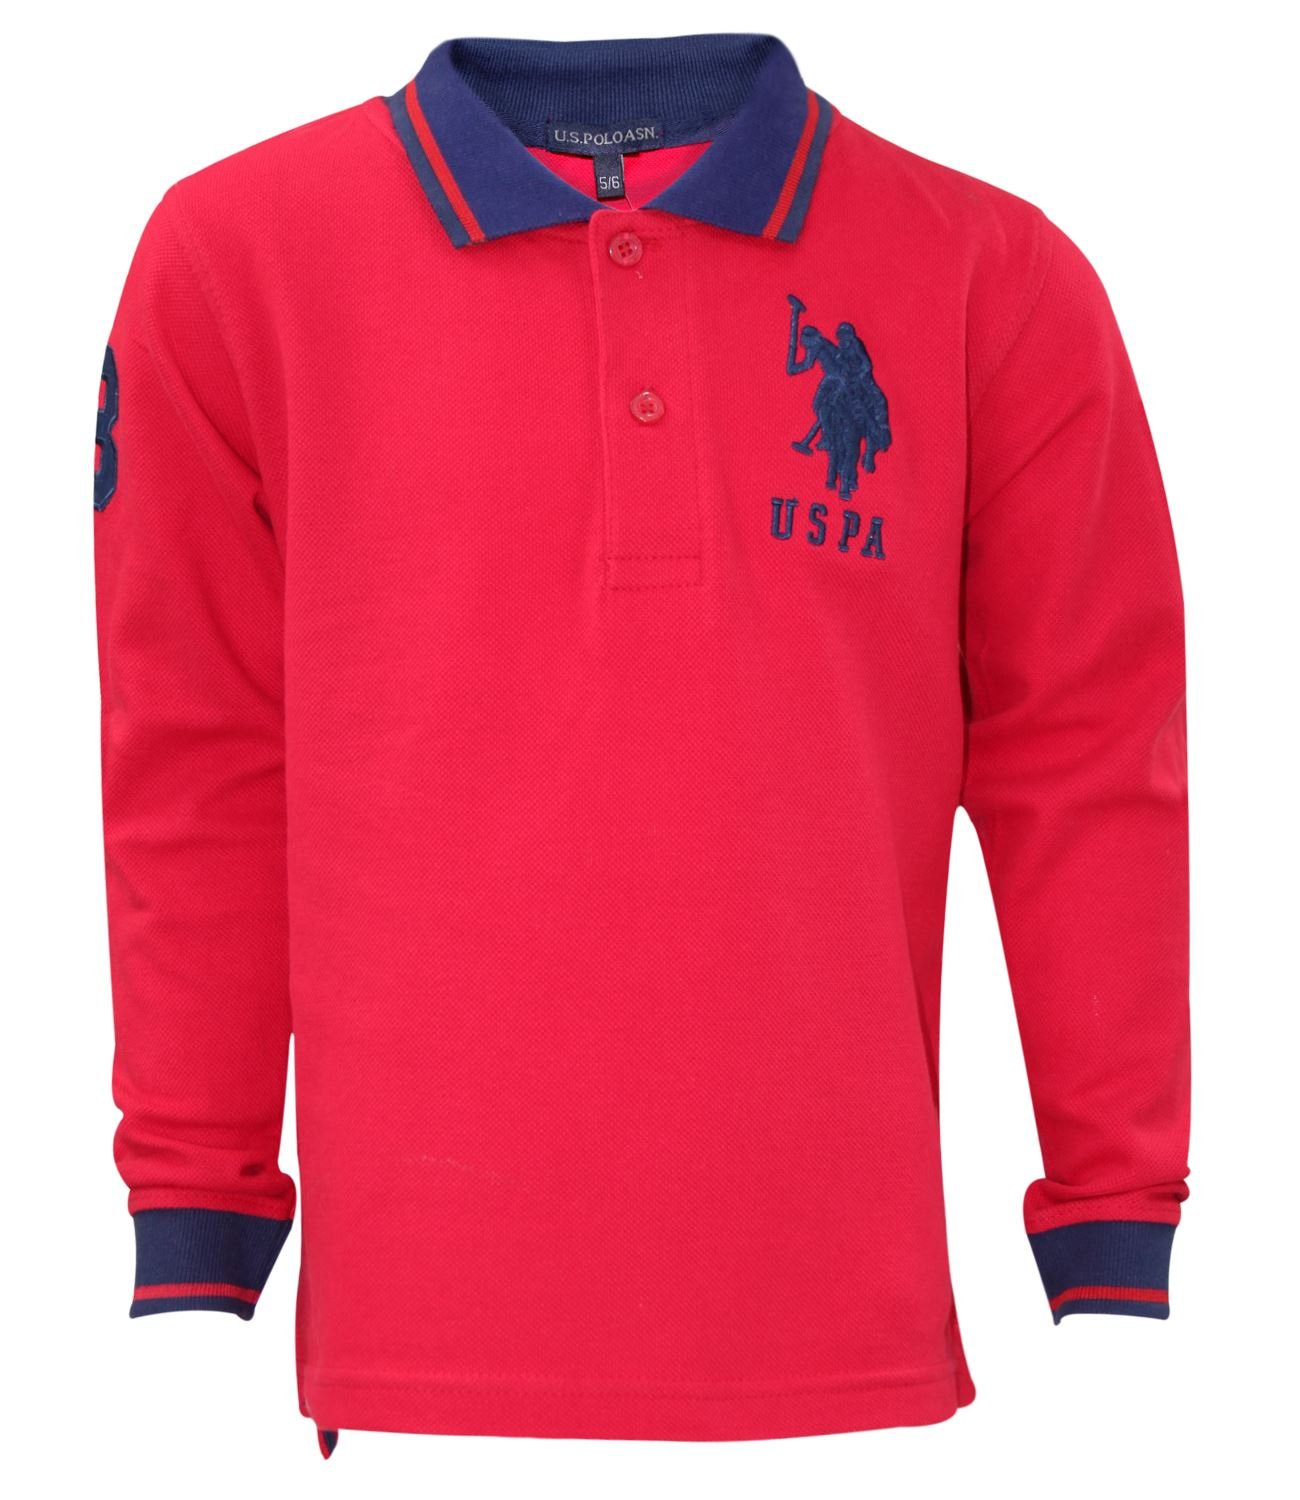 U.S.POLO ASSN. Kids Printed Tip Collar T Shirt